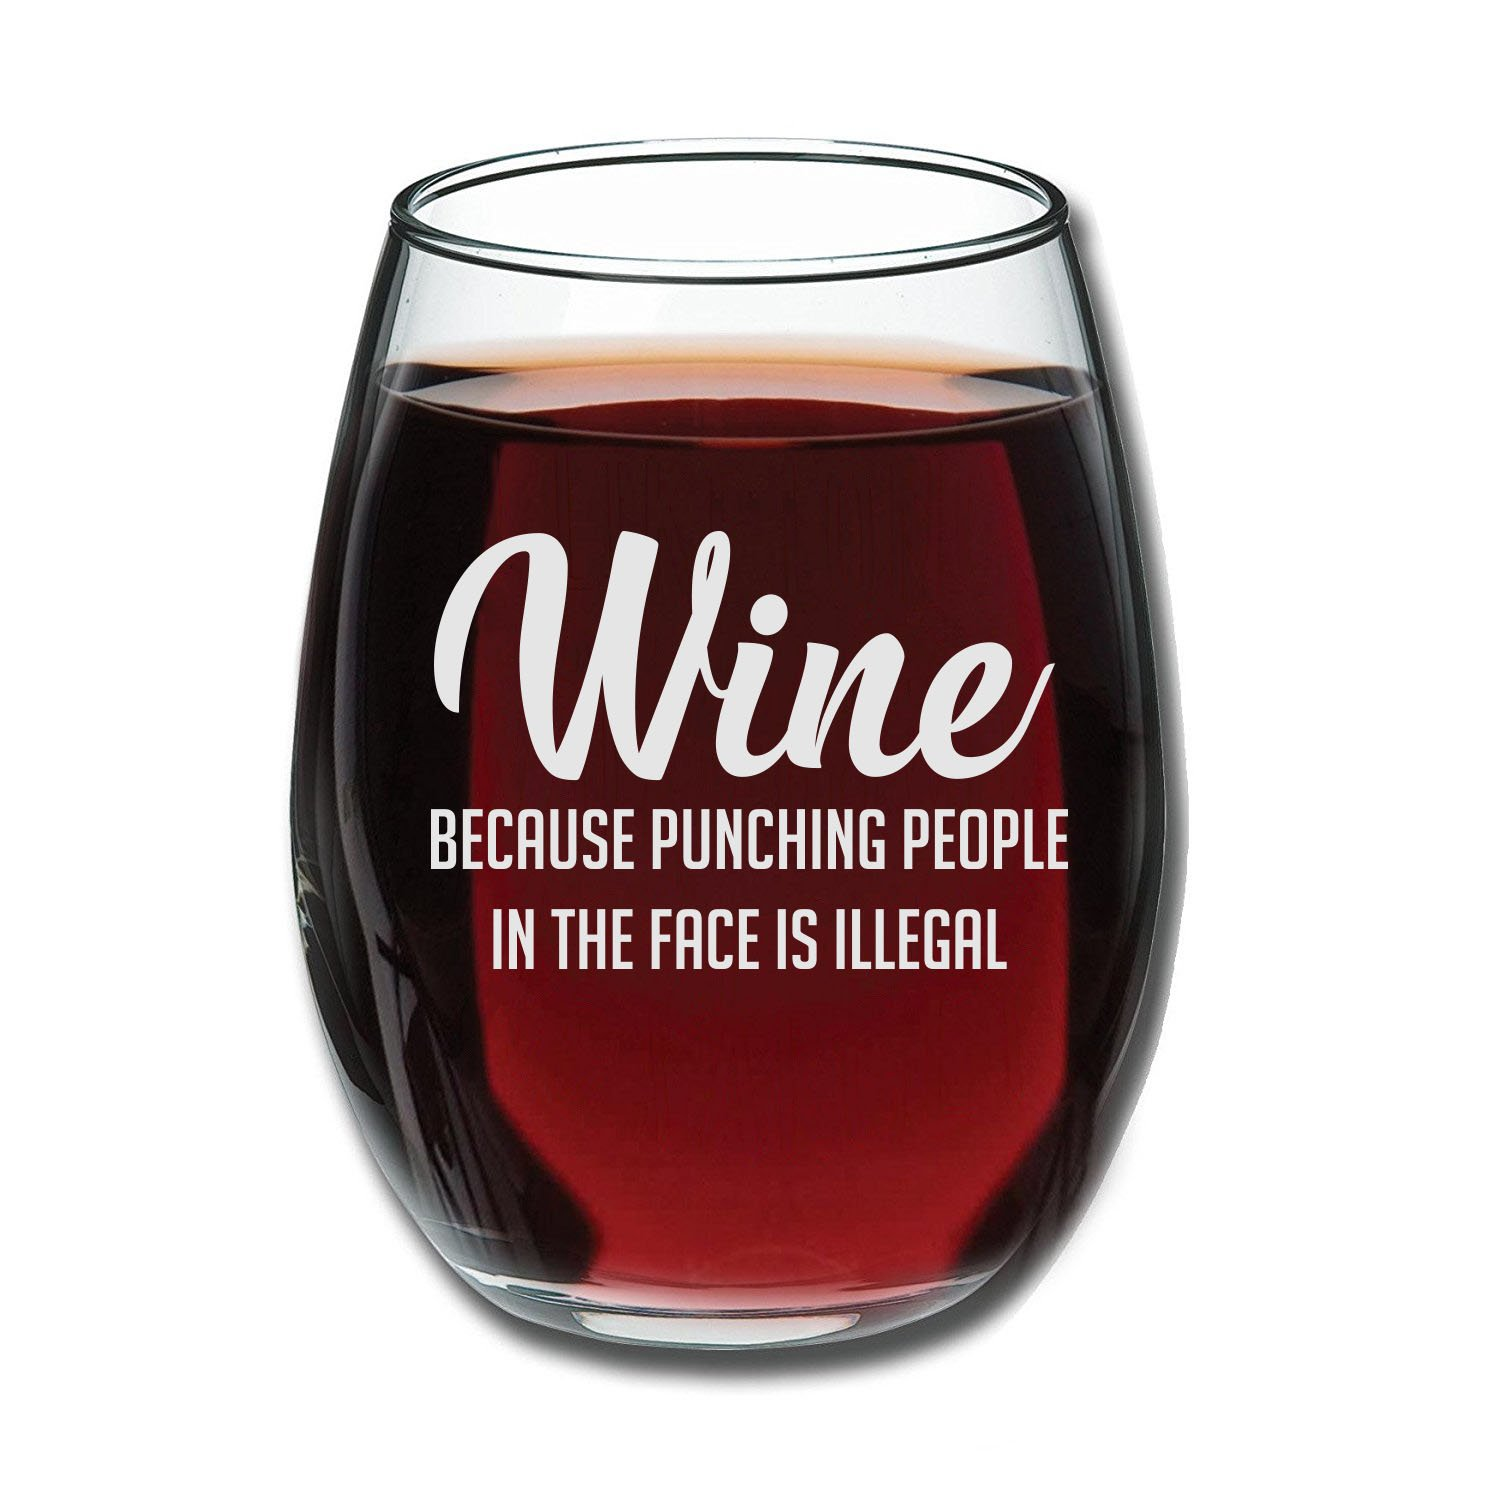 Wine Because Punching People In The Face is Illegal Funny 15oz Wine Glass - Unique Novelty Gift Idea for Him, Her, Mom, Wife, Boss, Sister, Best Friend, BFF - Perfect Birthday Gifts for Coworker